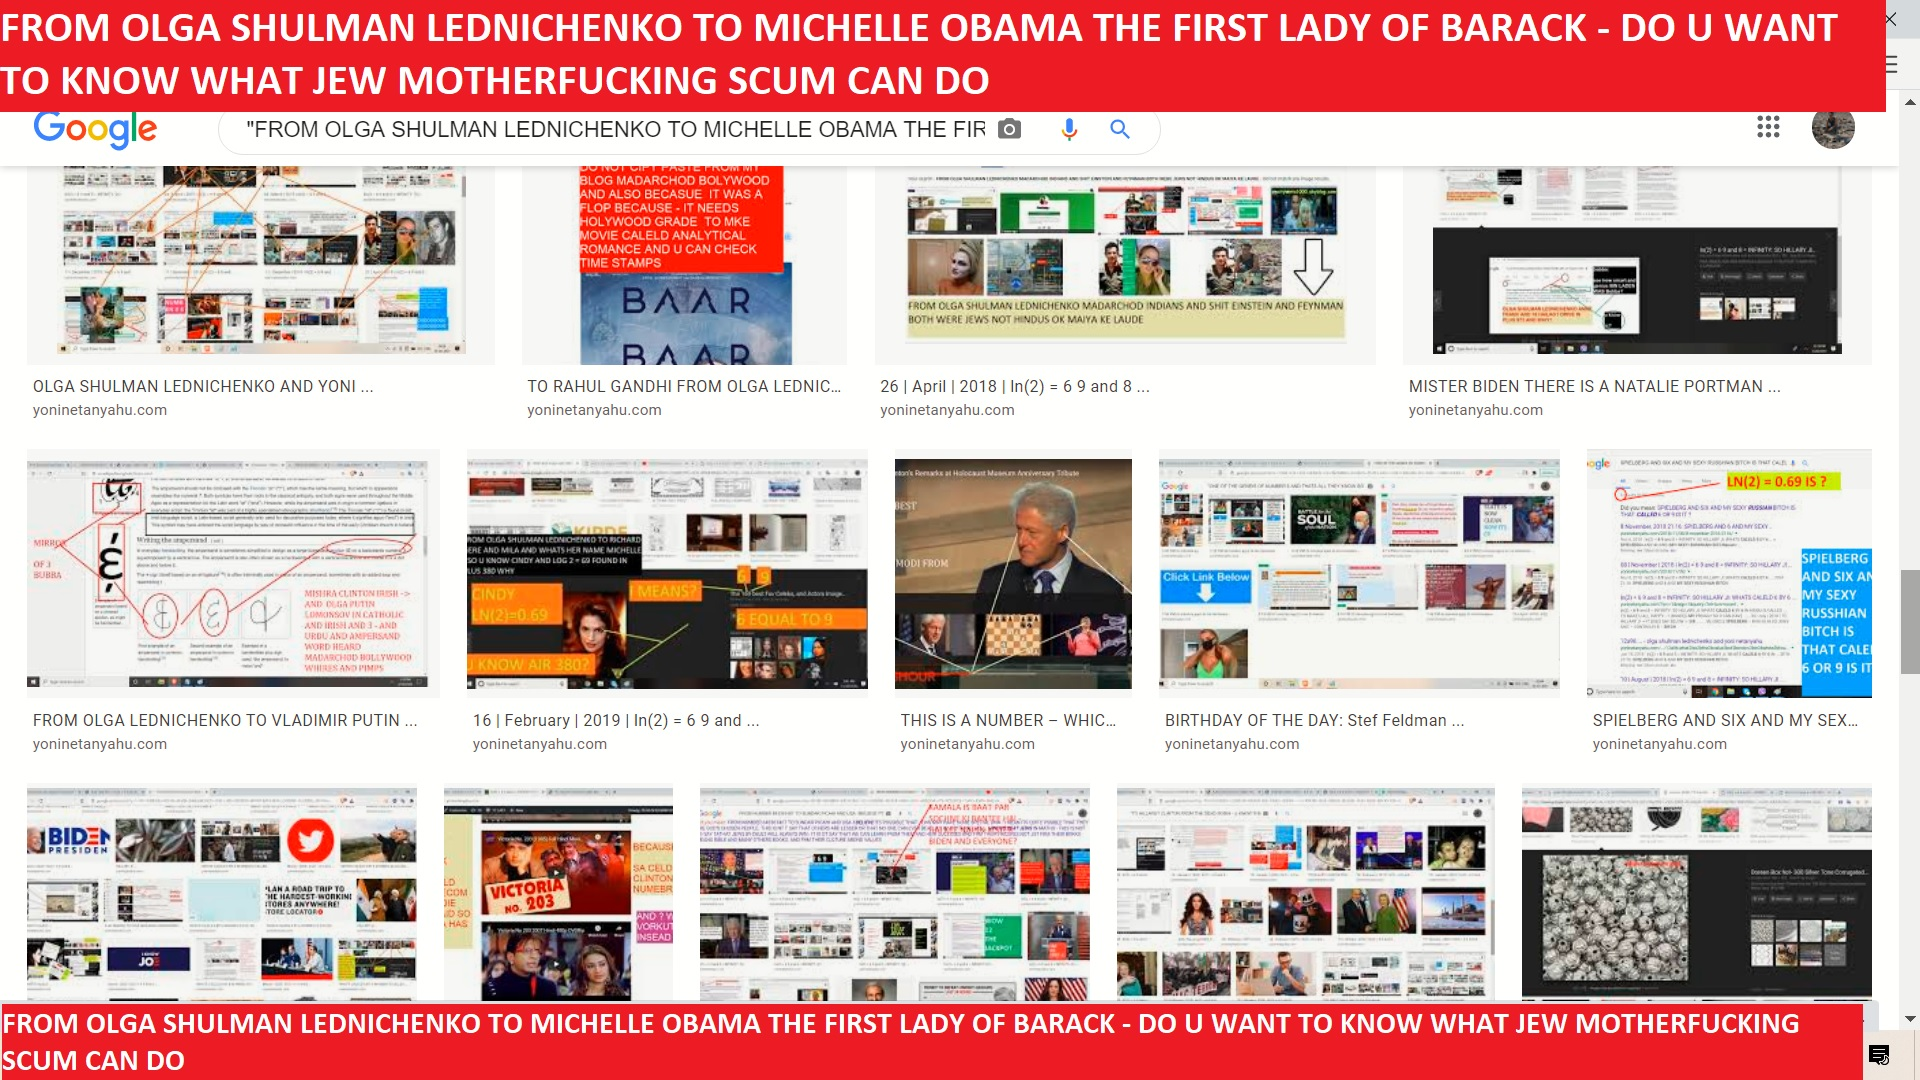 FROM OLGA SHULMAN LEDNICHENKO TO MICHELLE OBAMA THE FIRST LADY OF BARACK - DO U WANT TO KNOW WHAT JEW MOTHERFUCKING SCUM CAN DO -------===---===========